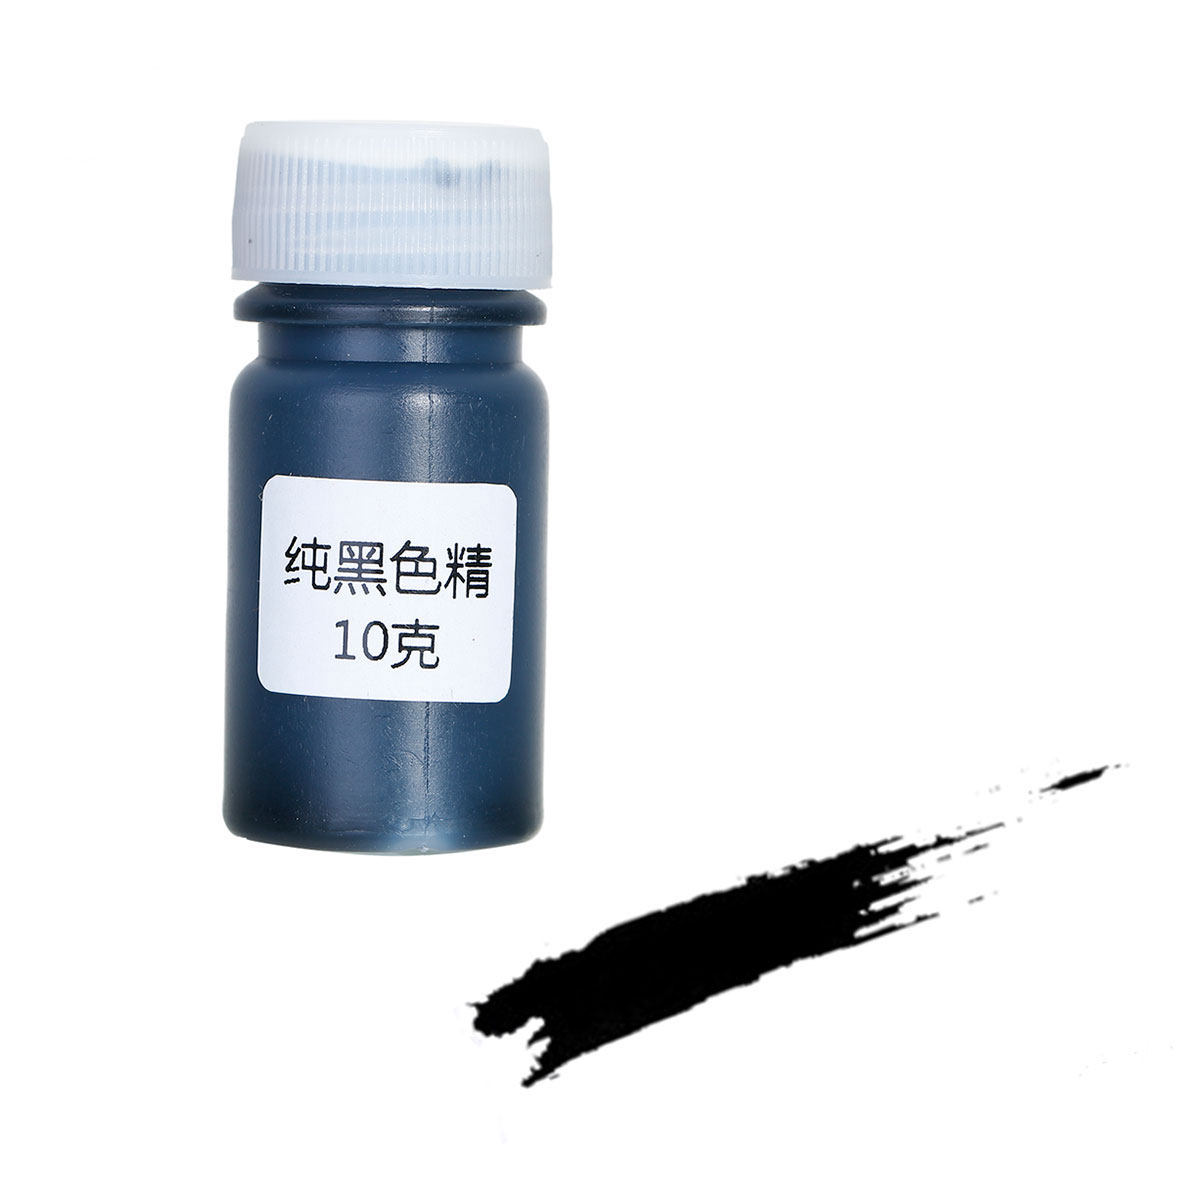 Doreen Box Resin Jewelry Tools Pigment Dye Black 49mm X 22mm,1 Bottle(Contain Liquid,Approx 10 Grams) 2017 New